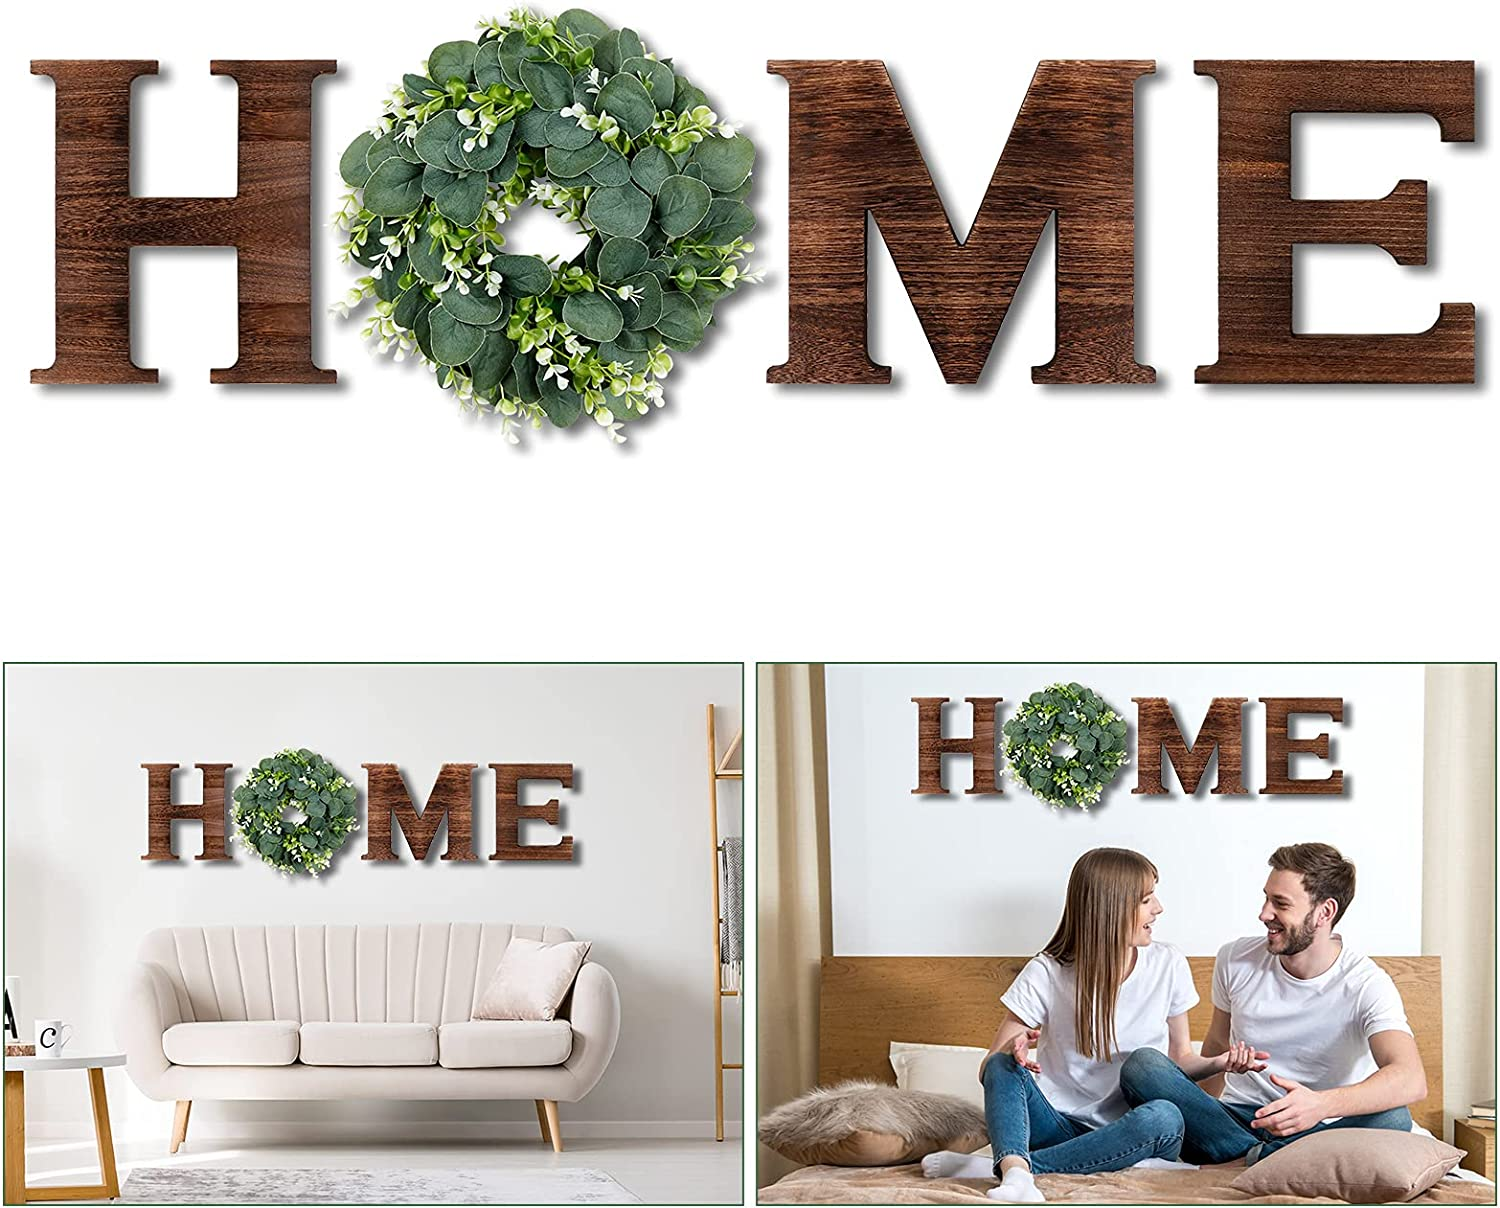 AerWo Wooden Home Sign Rustic Wall Decor with Artificial Eucalyptus Wreath, Upgarded 9.8'' Home Letters Farmhouse Wall Hanging Decor for Living Room Entry Way Kitchen Housewarming Gift